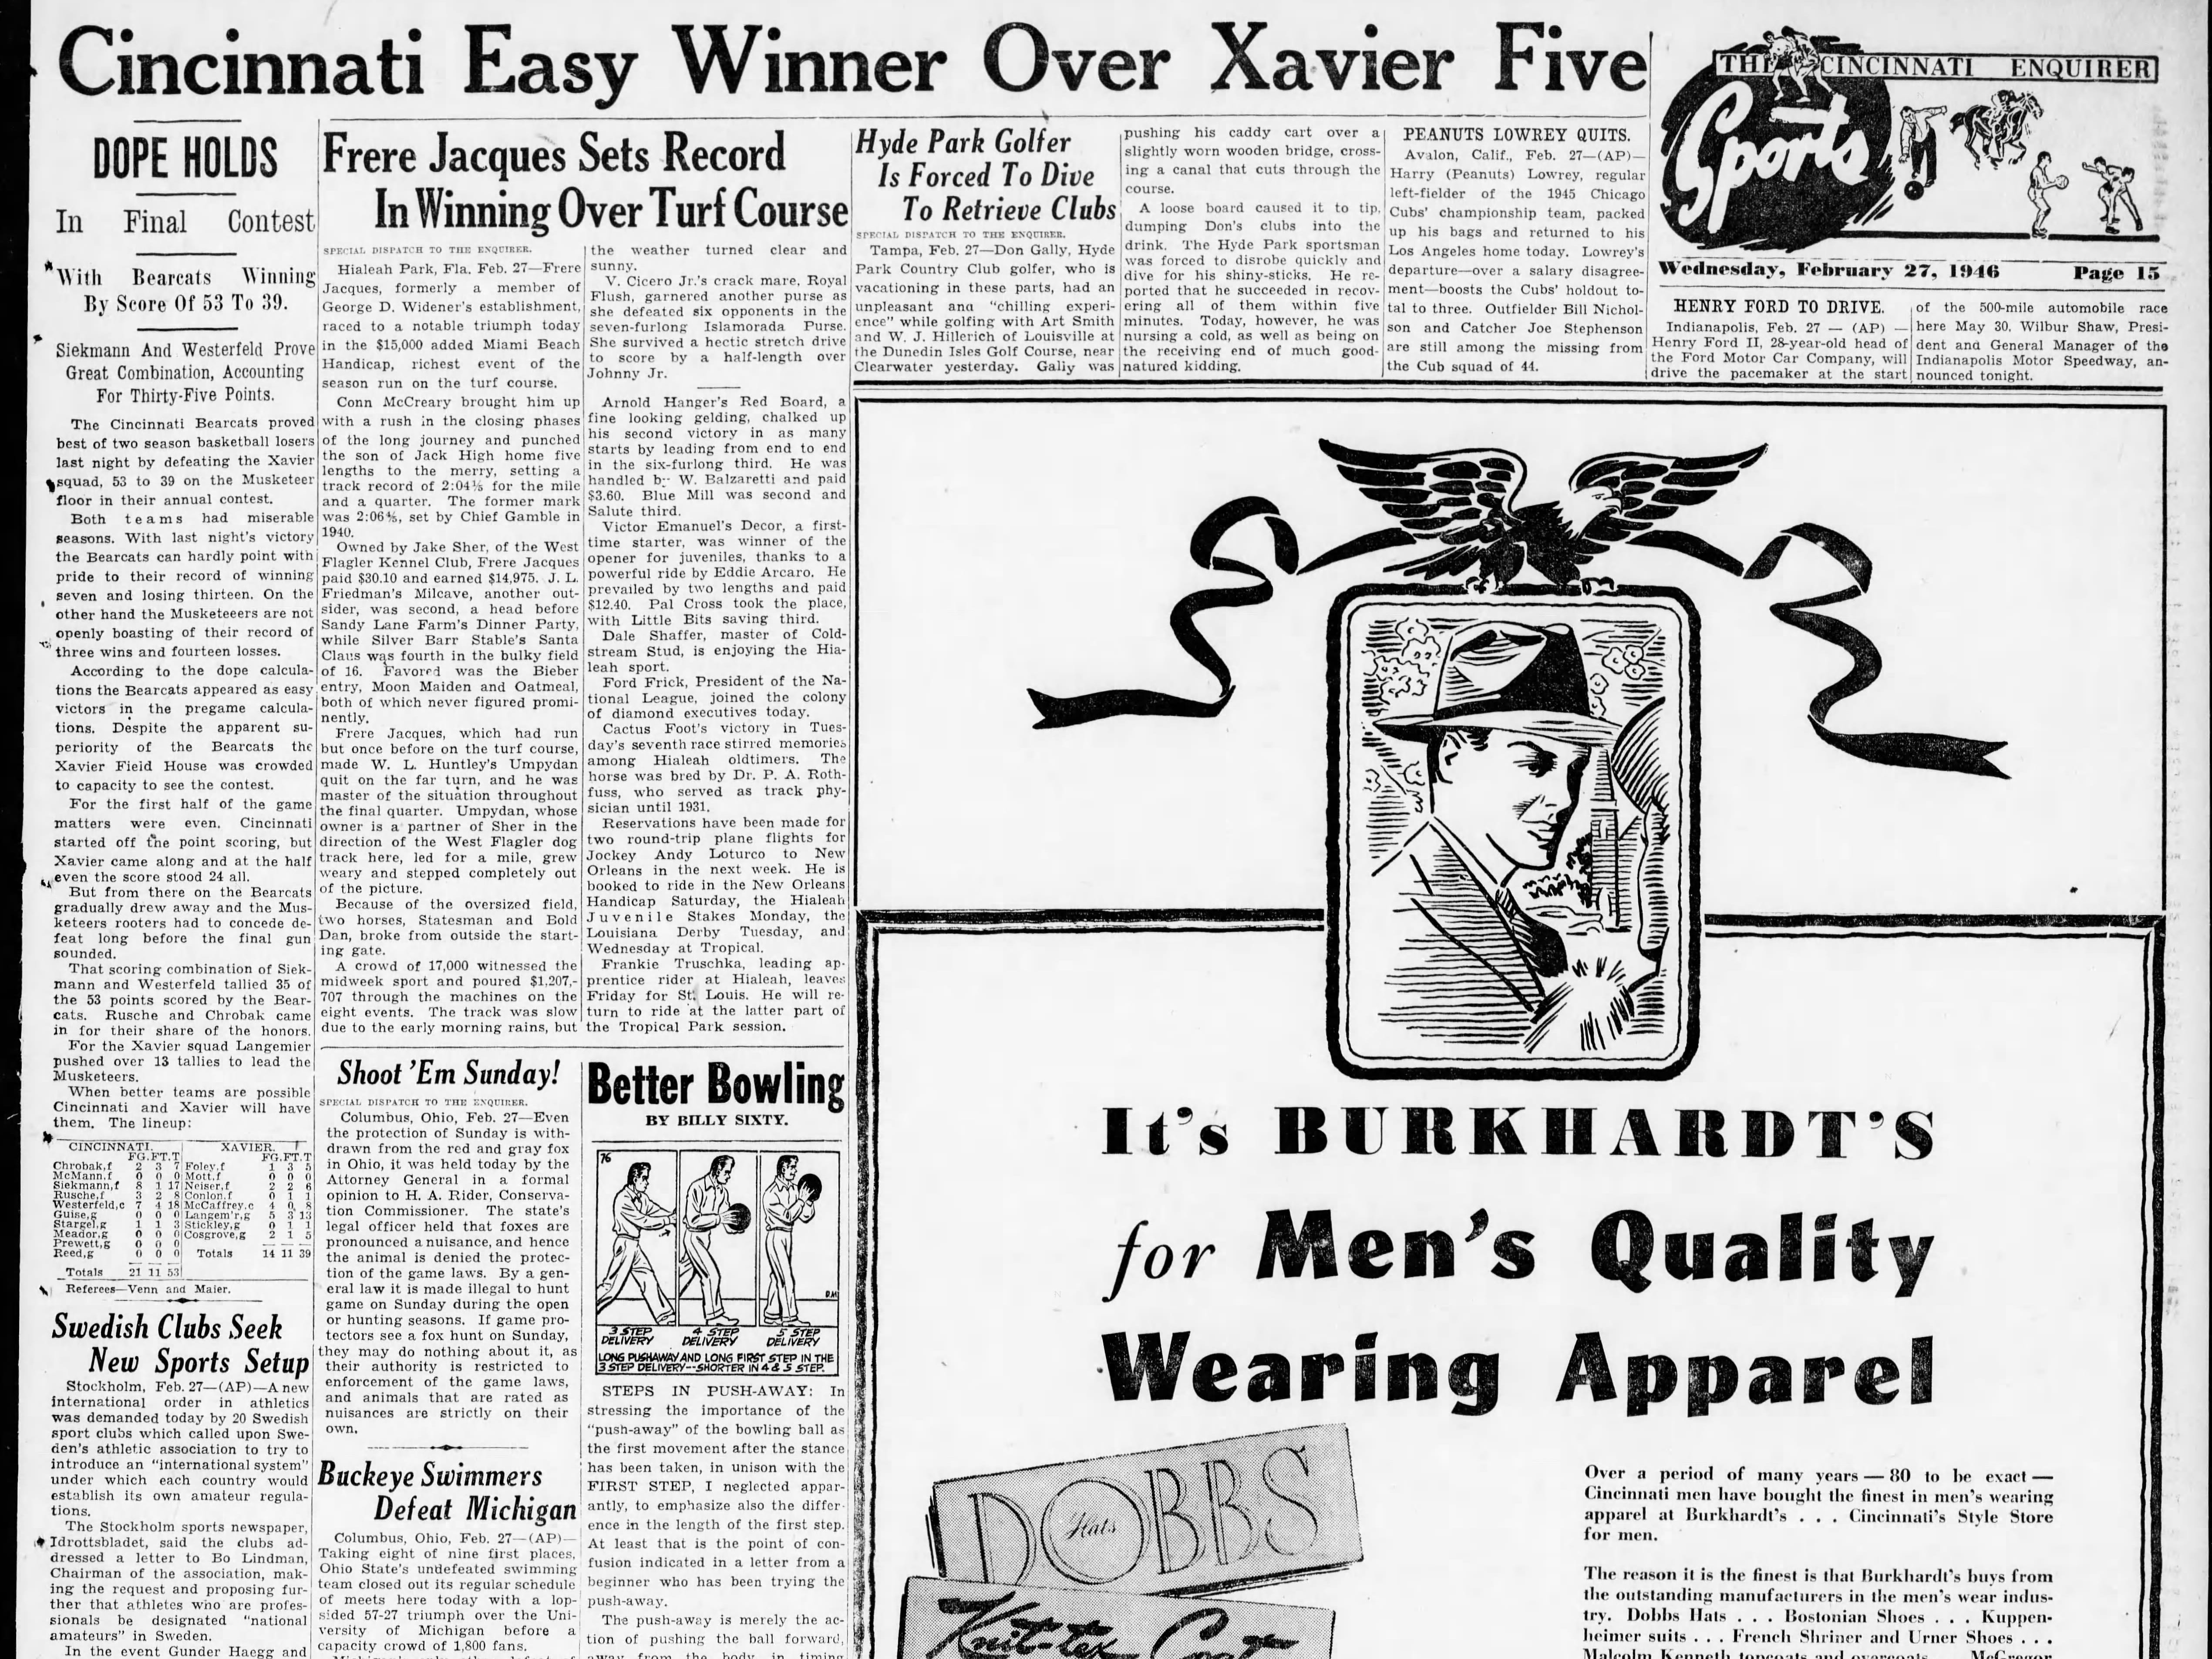 UC claimed its first win in the series of Xavier in 1946. The Bearcats prevailed with a 53-39 win.